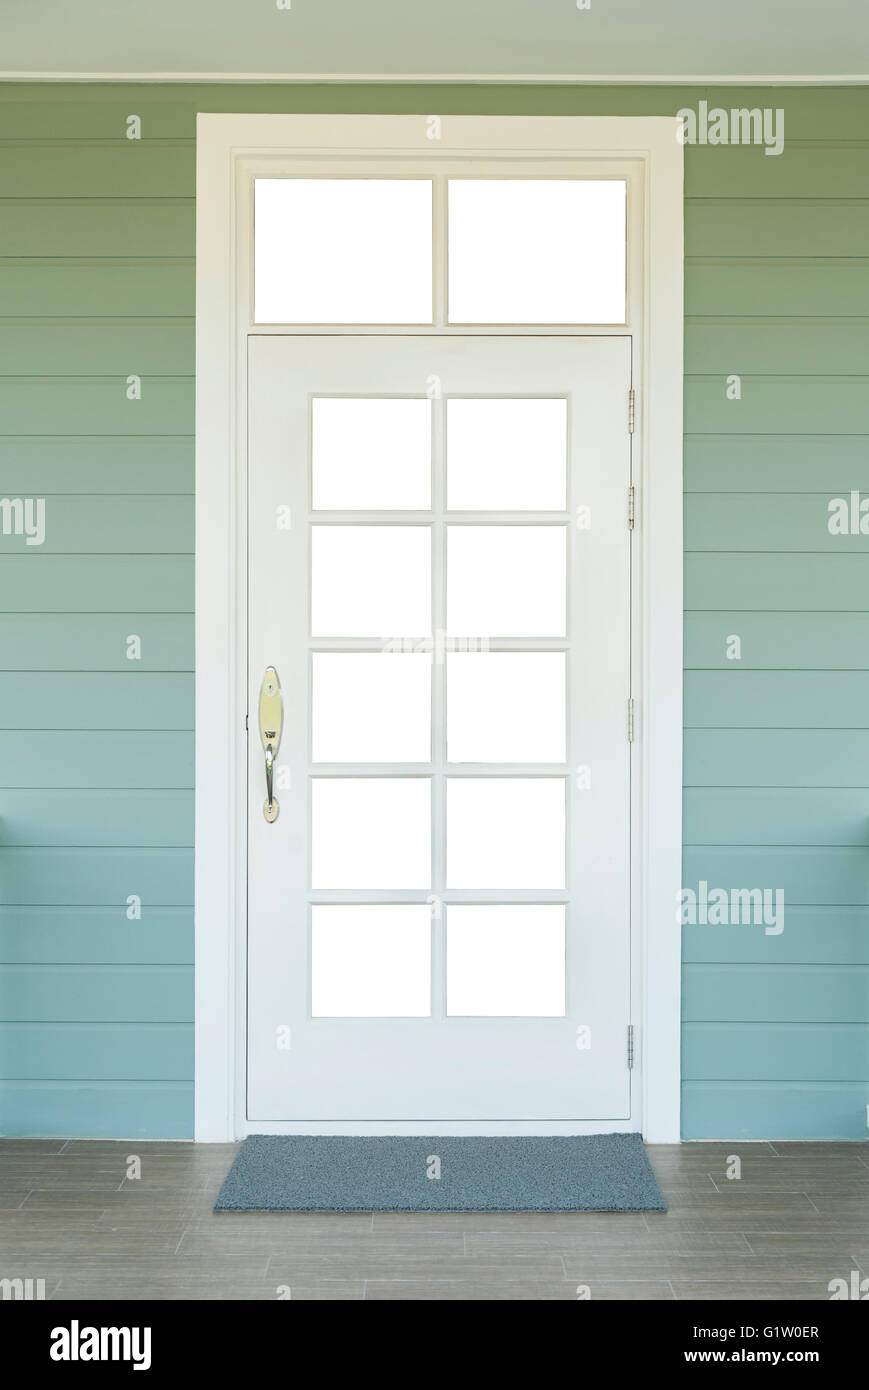 vintage white door on the green wall with a gray carpet - Stock Image